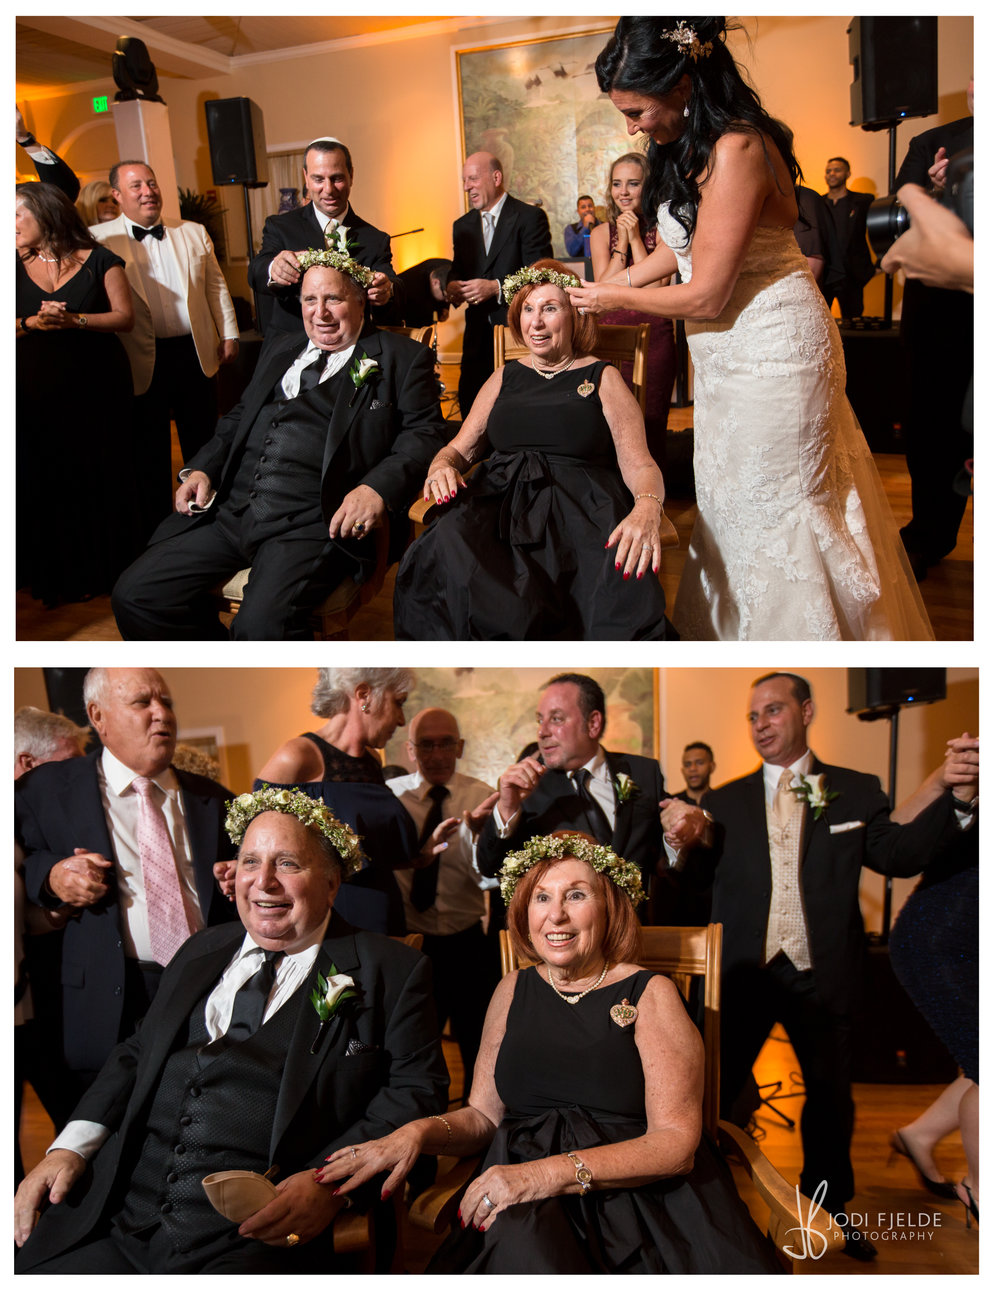 Benvenuto_Boynton_Beach_Wedding_Christine_and Doug_Married 13.jpg